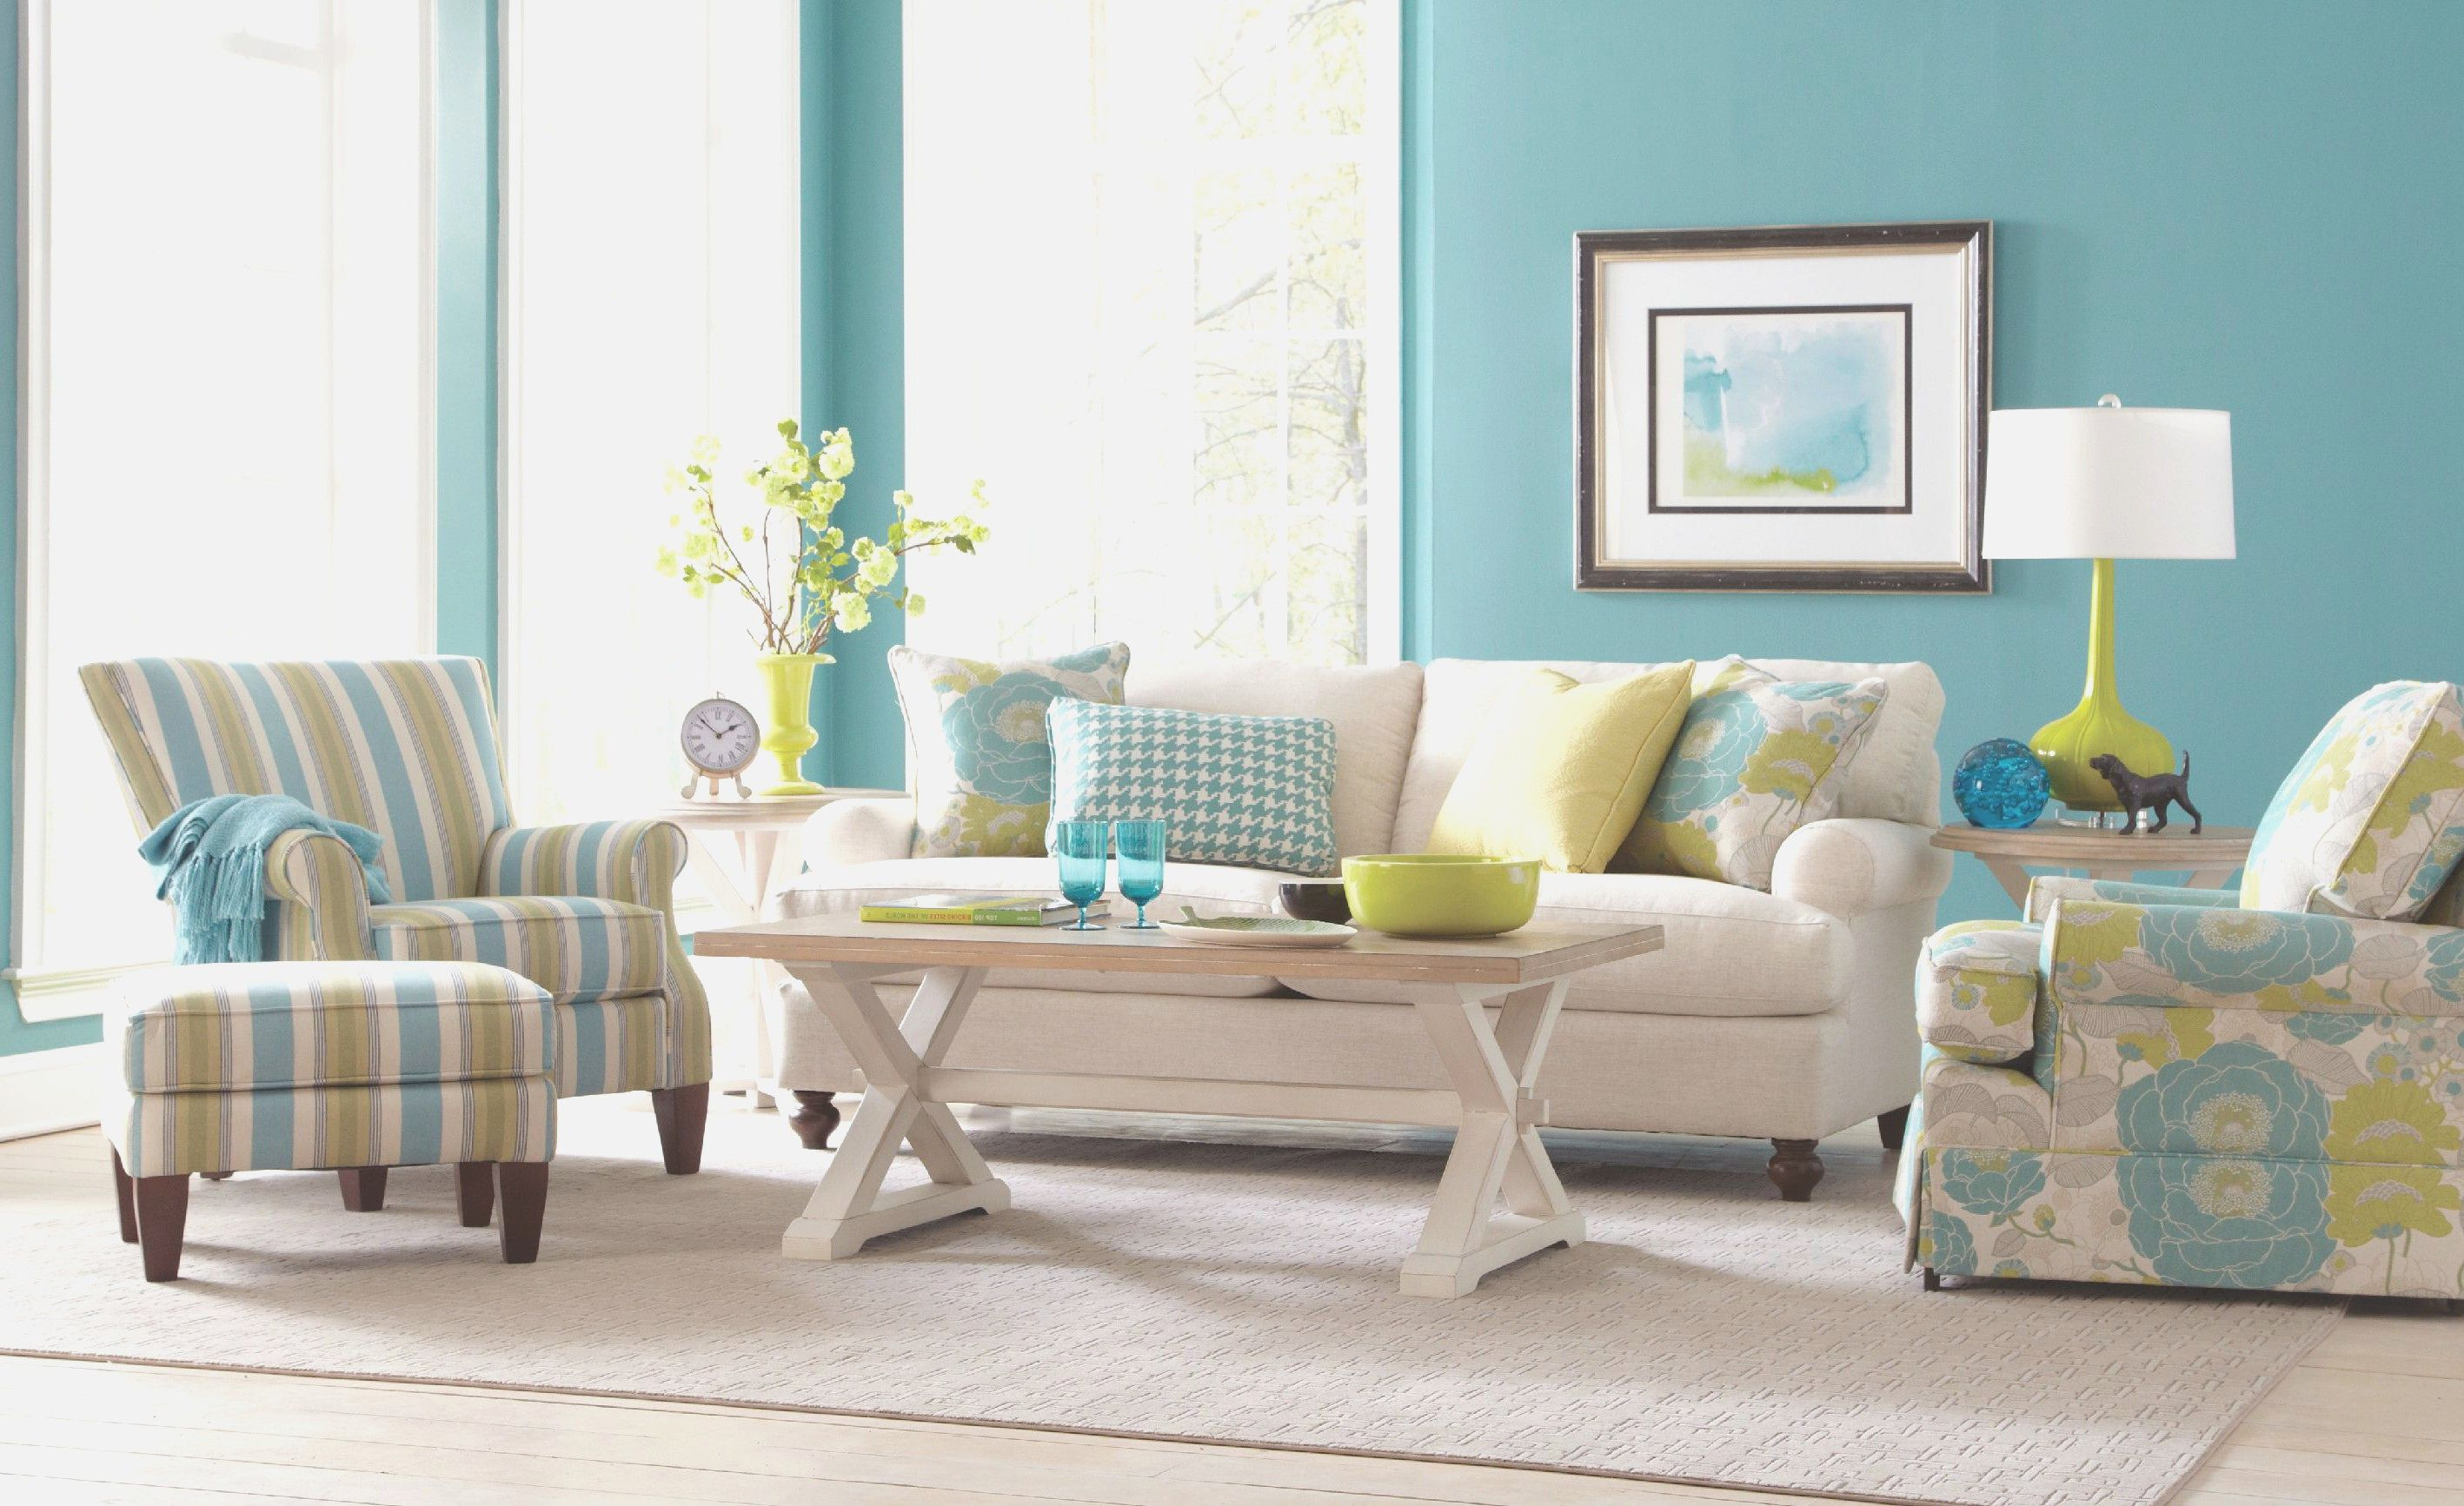 living livings ideas sets blue stupendous room furniture size aqua decorating and accessories of turquoise full